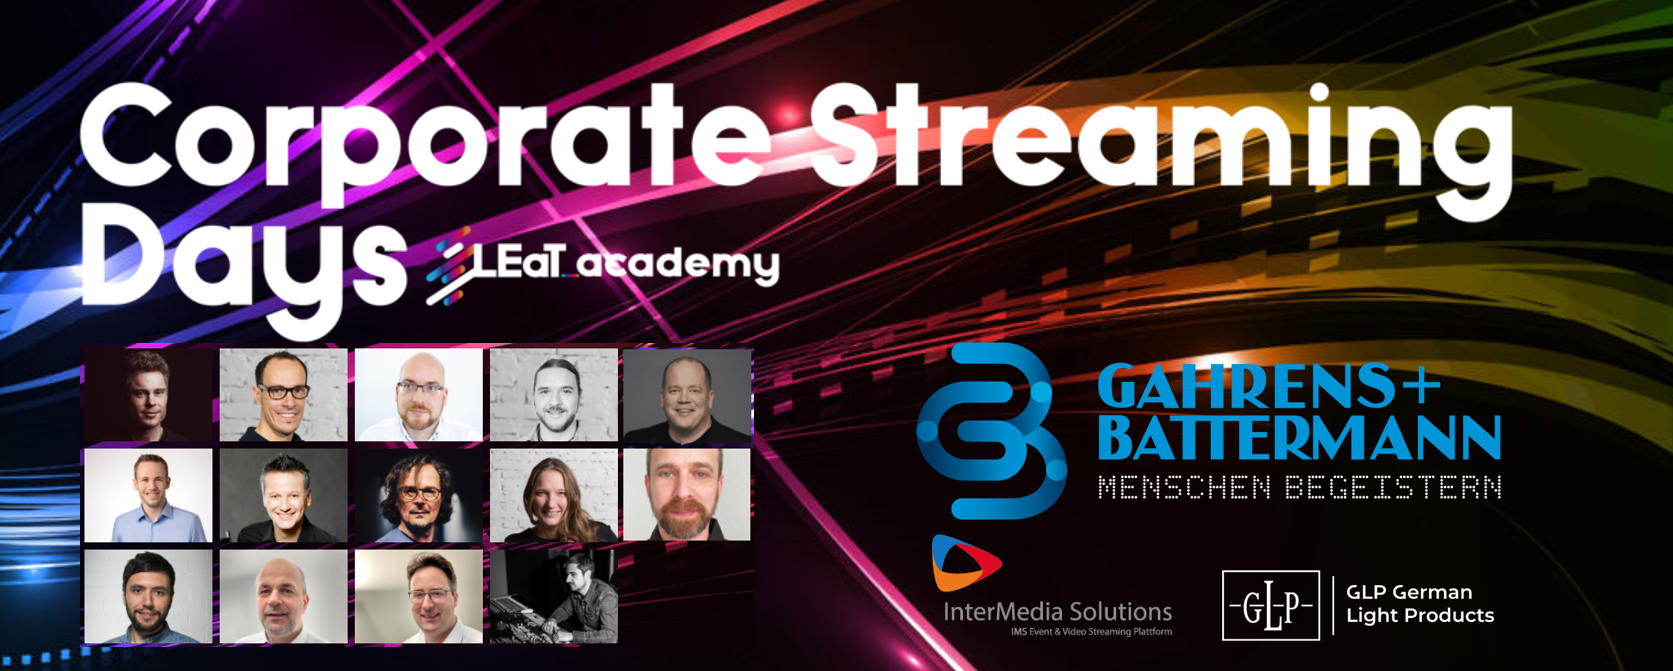 Corporate Streaming Days LEaT academy